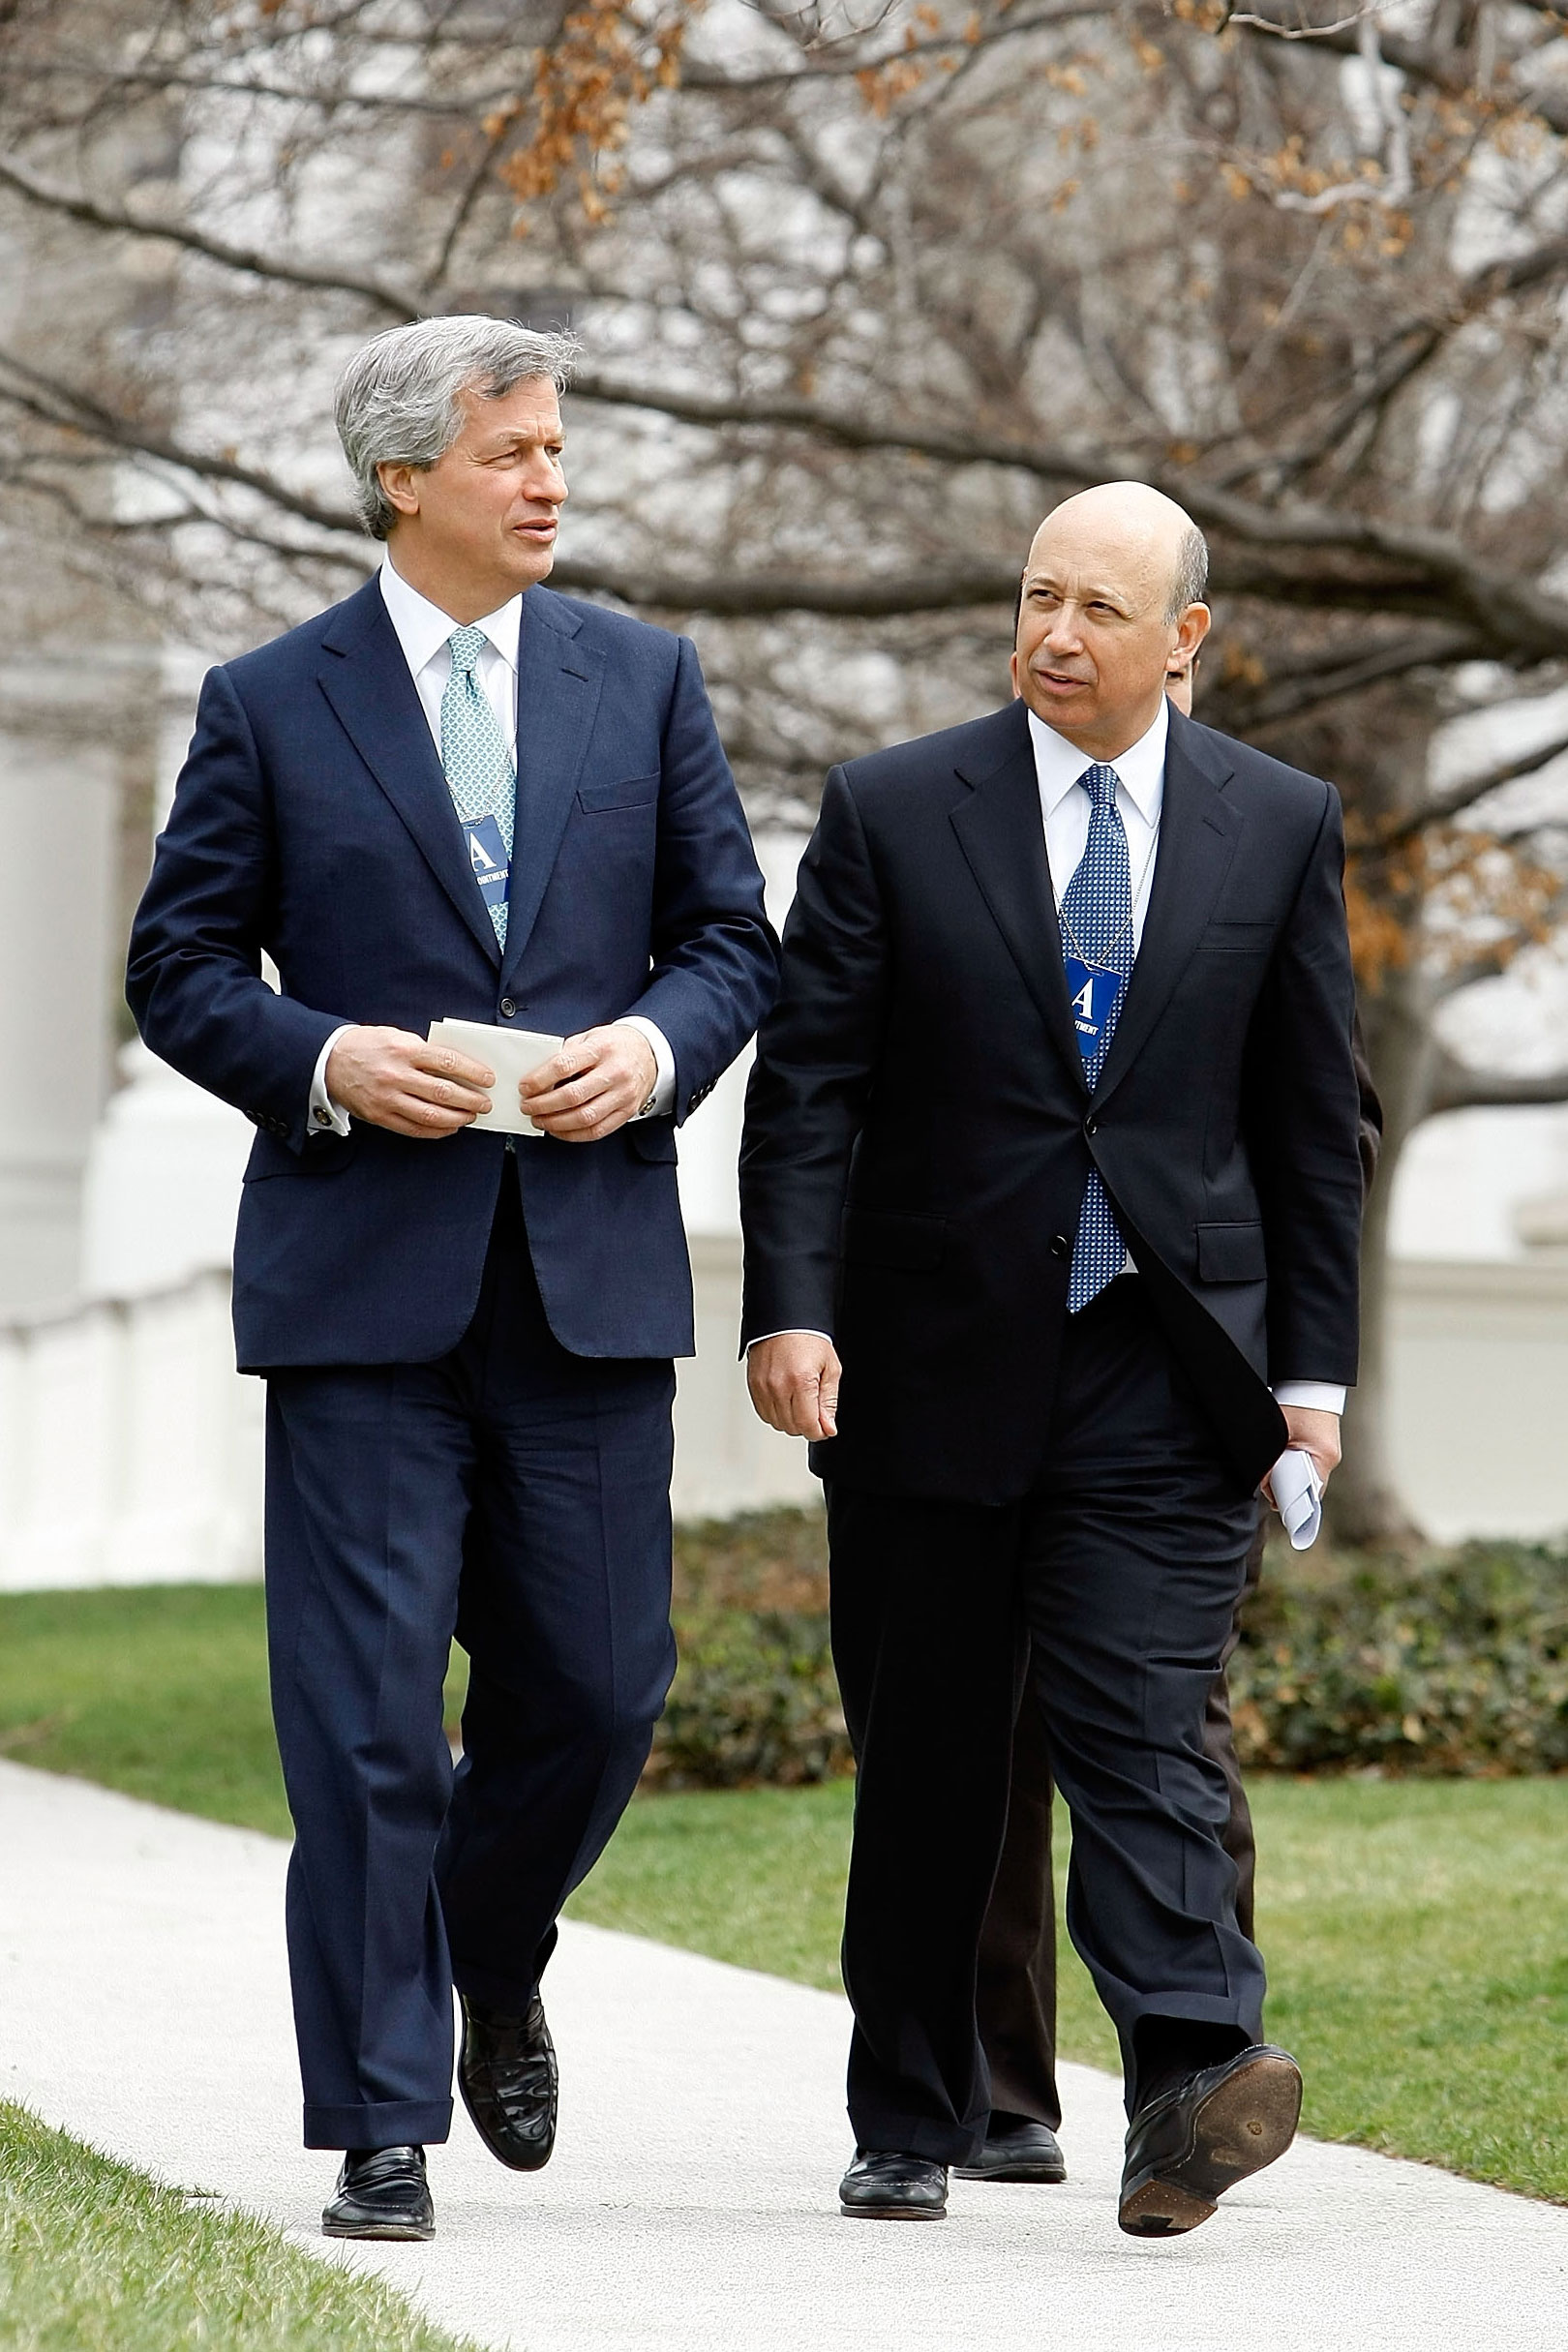 Inside the Jamie Dimon–Lloyd Blankfein Pep Talk -- NYMag